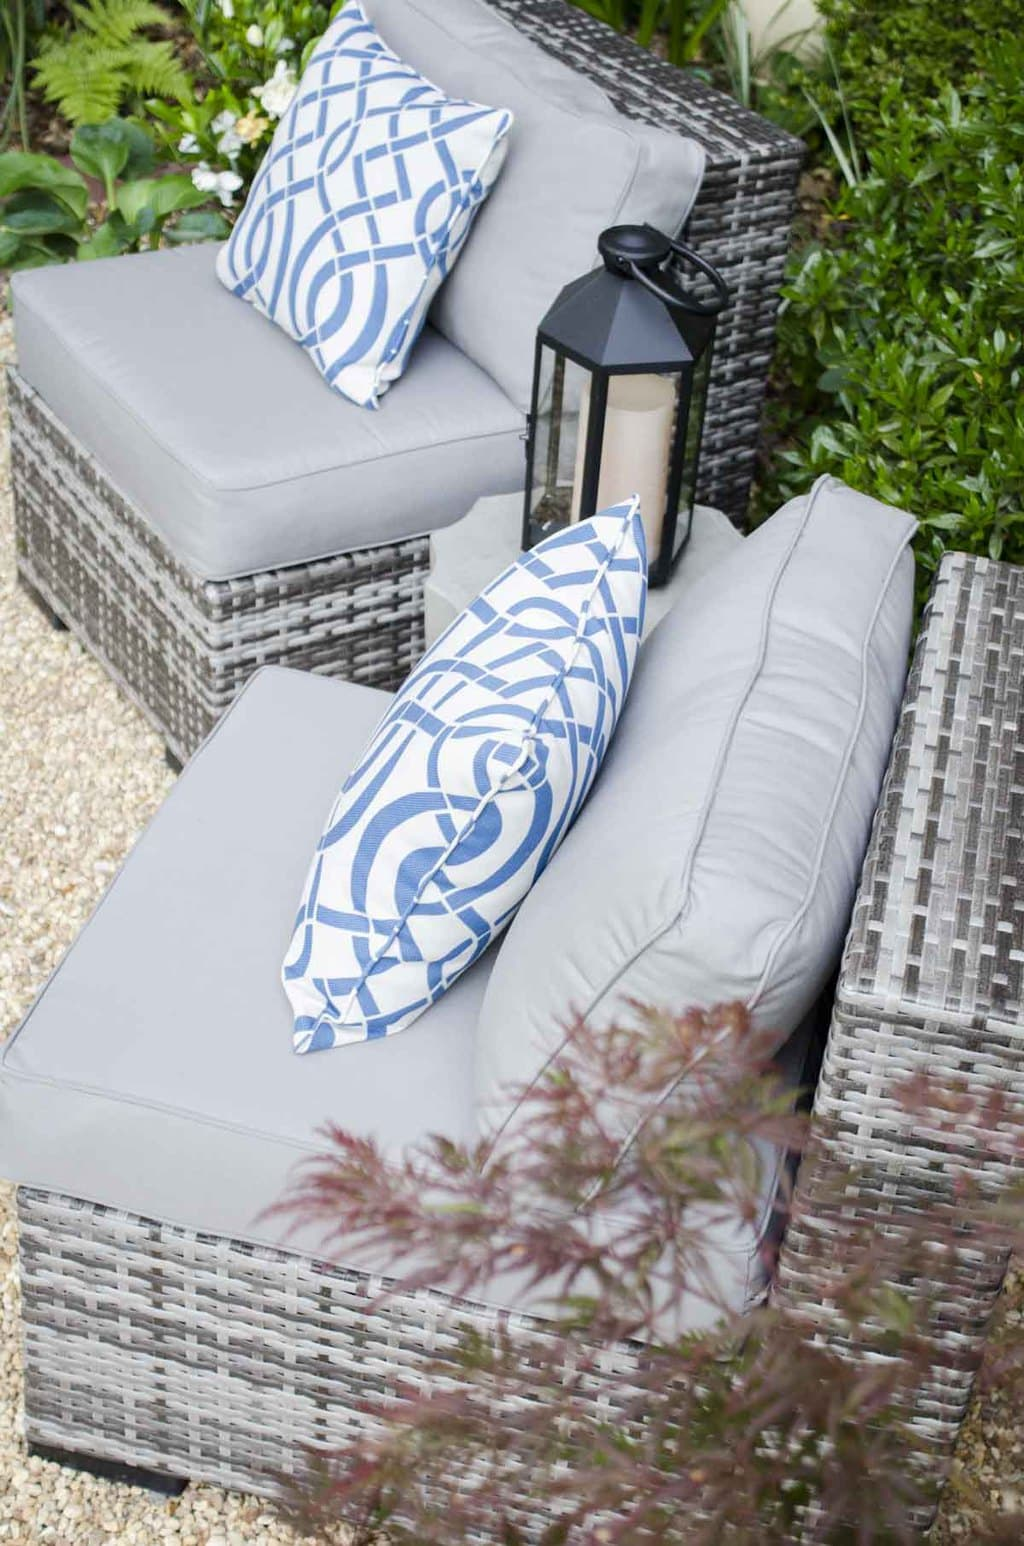 Wicker patio furniture on @thouswellblog